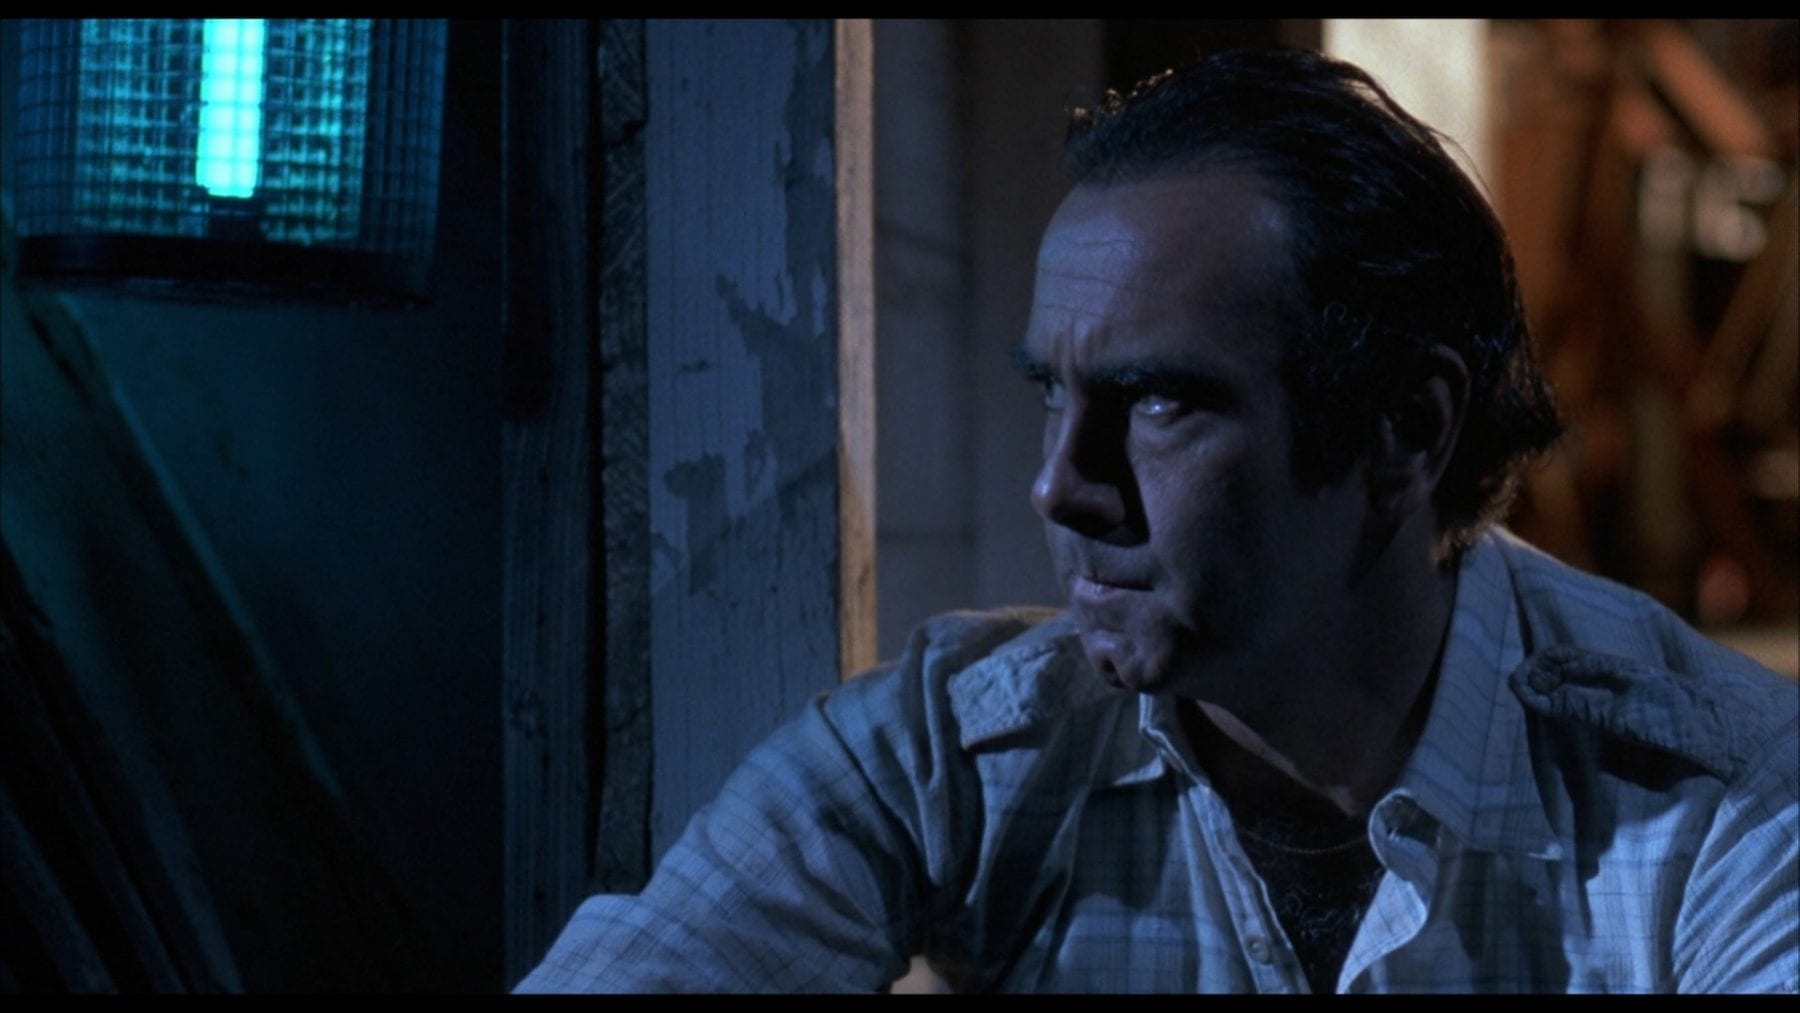 Marty (Dan Hedaya) intensifty grows as he ponders having his wife and her lover murdered.